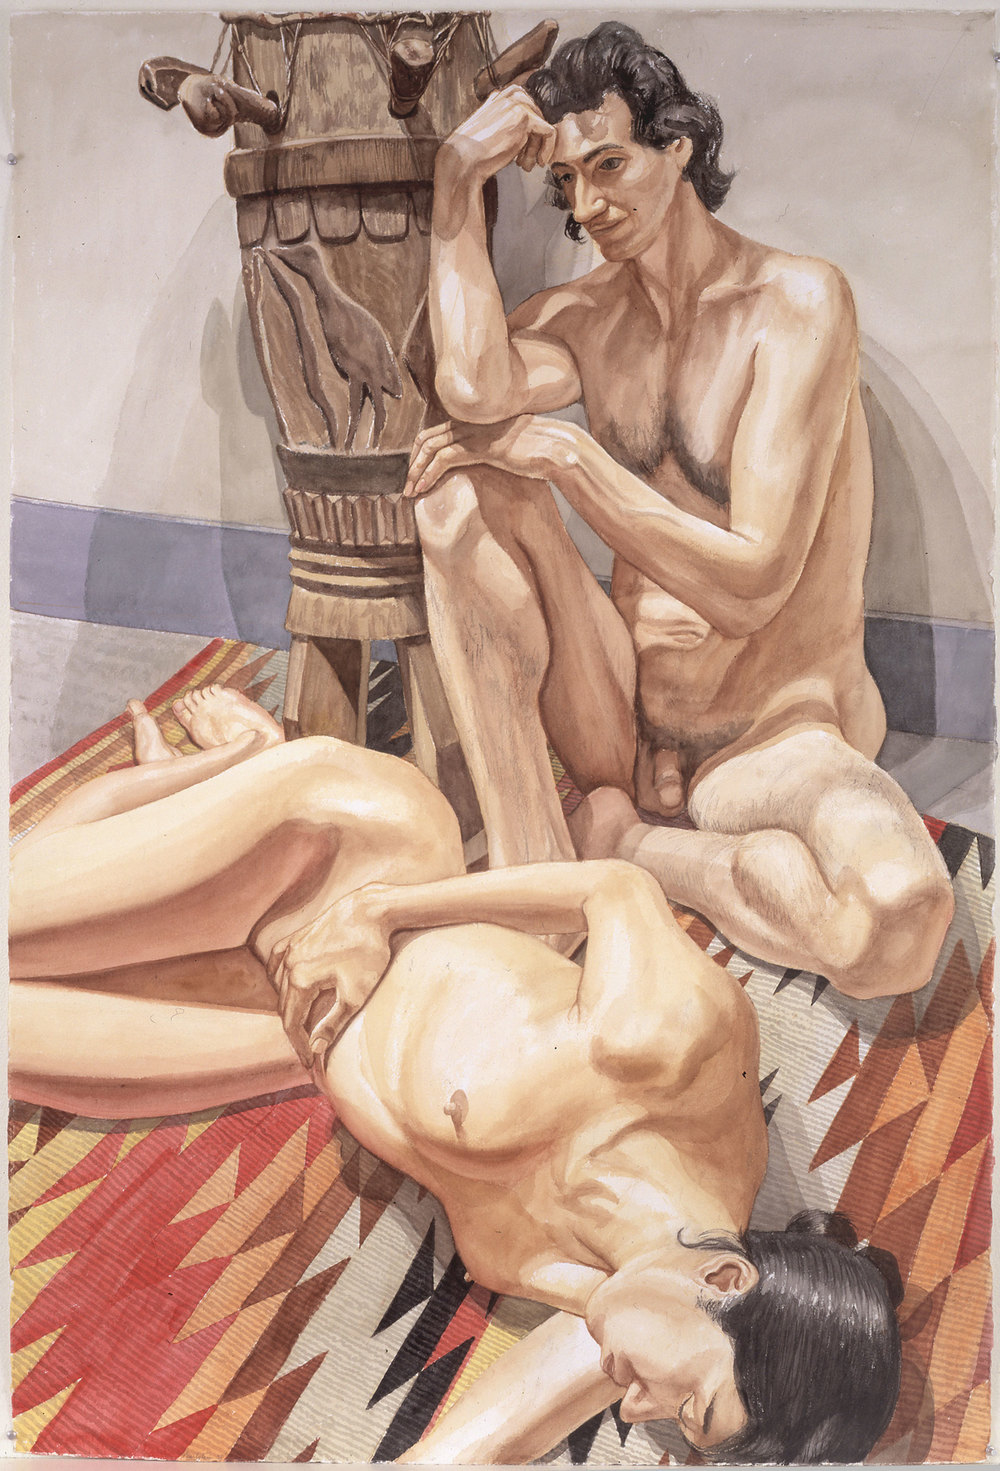 NUDE COUPLE, AFRICAN DRUM, NAVAHO RUG, 1998 Watercolor on paper 59 1/2 x 40 inches